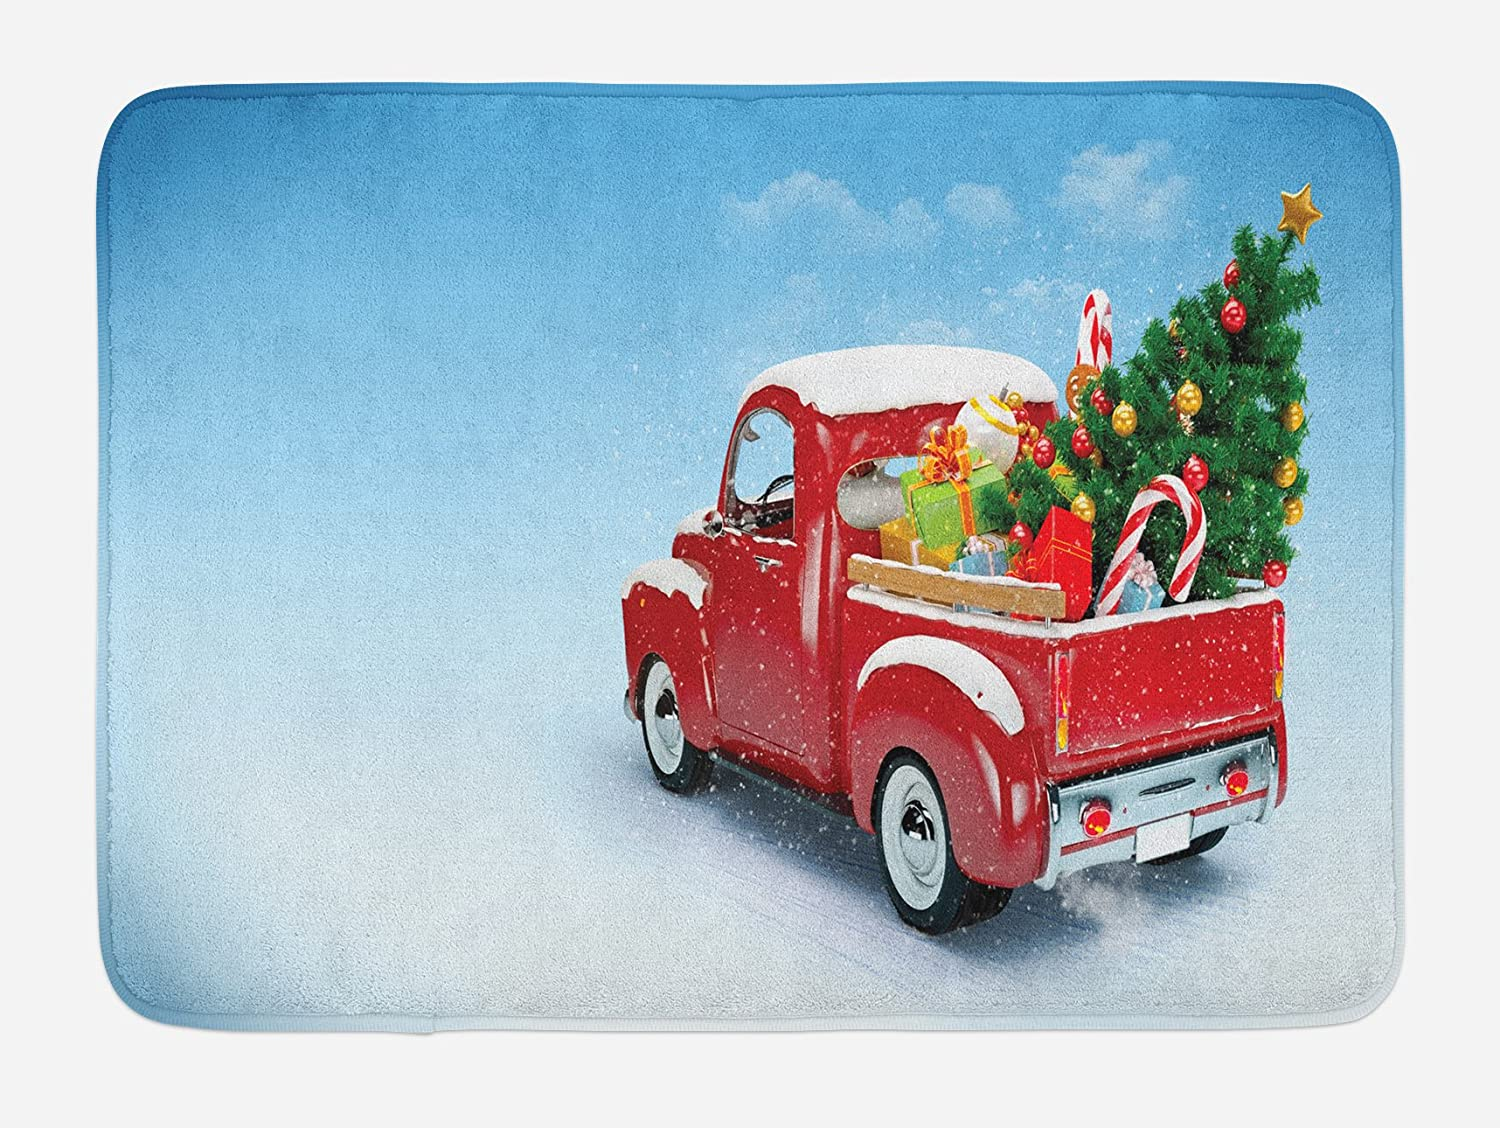 "Ambesonne Christmas Bath Mat, Red Classical Pickup Truck with Tree Gifts and Ornaments Snowy Winter Day Image, Plush Bathroom Decor Mat with Non Slip Backing, 29.5"" X 17.5"", Blue Red"